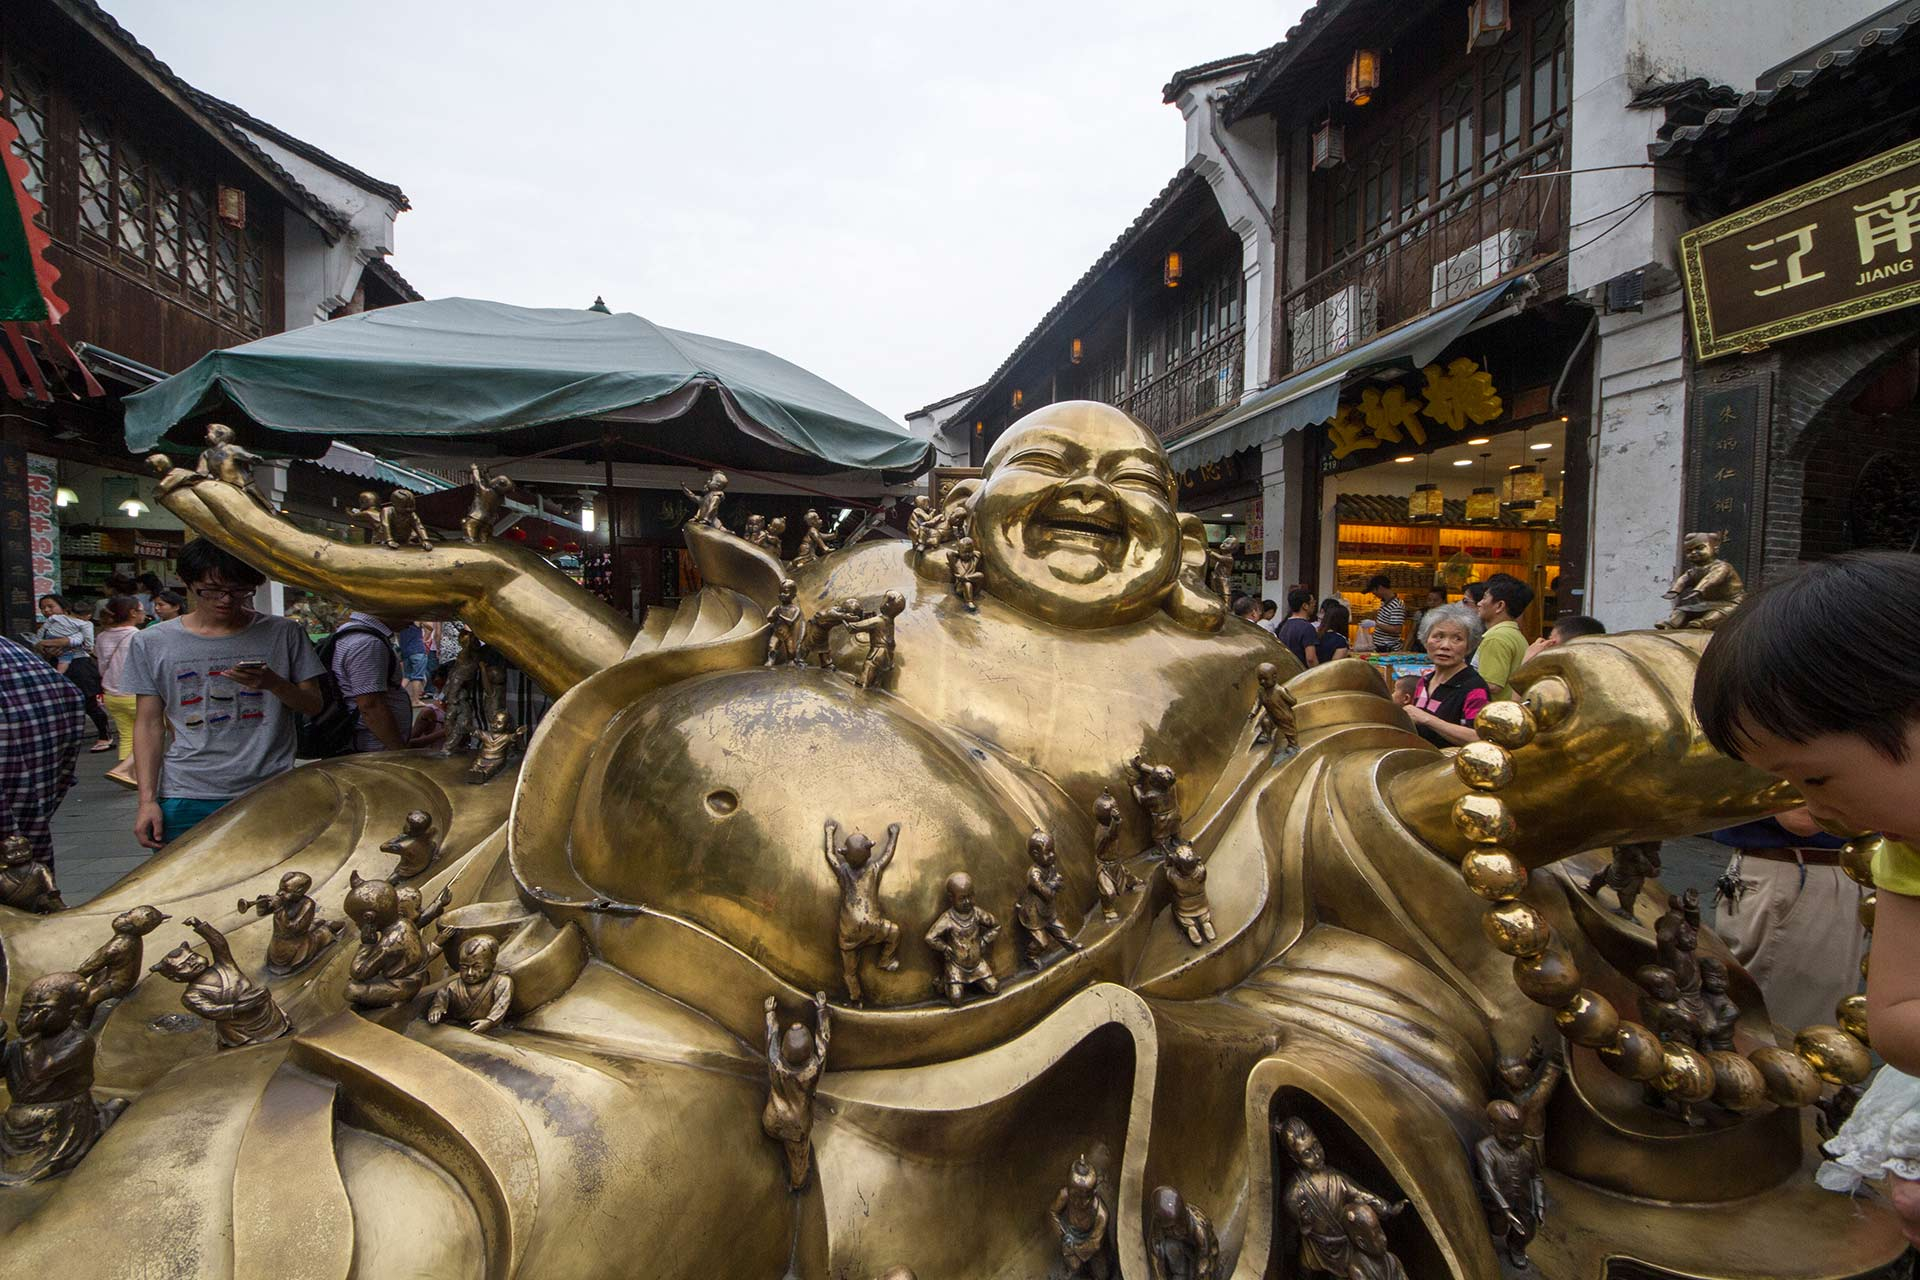 Brass statue of the Happy Buddha on Hefang Historical Street, Hangzhou, Zhejiang, China